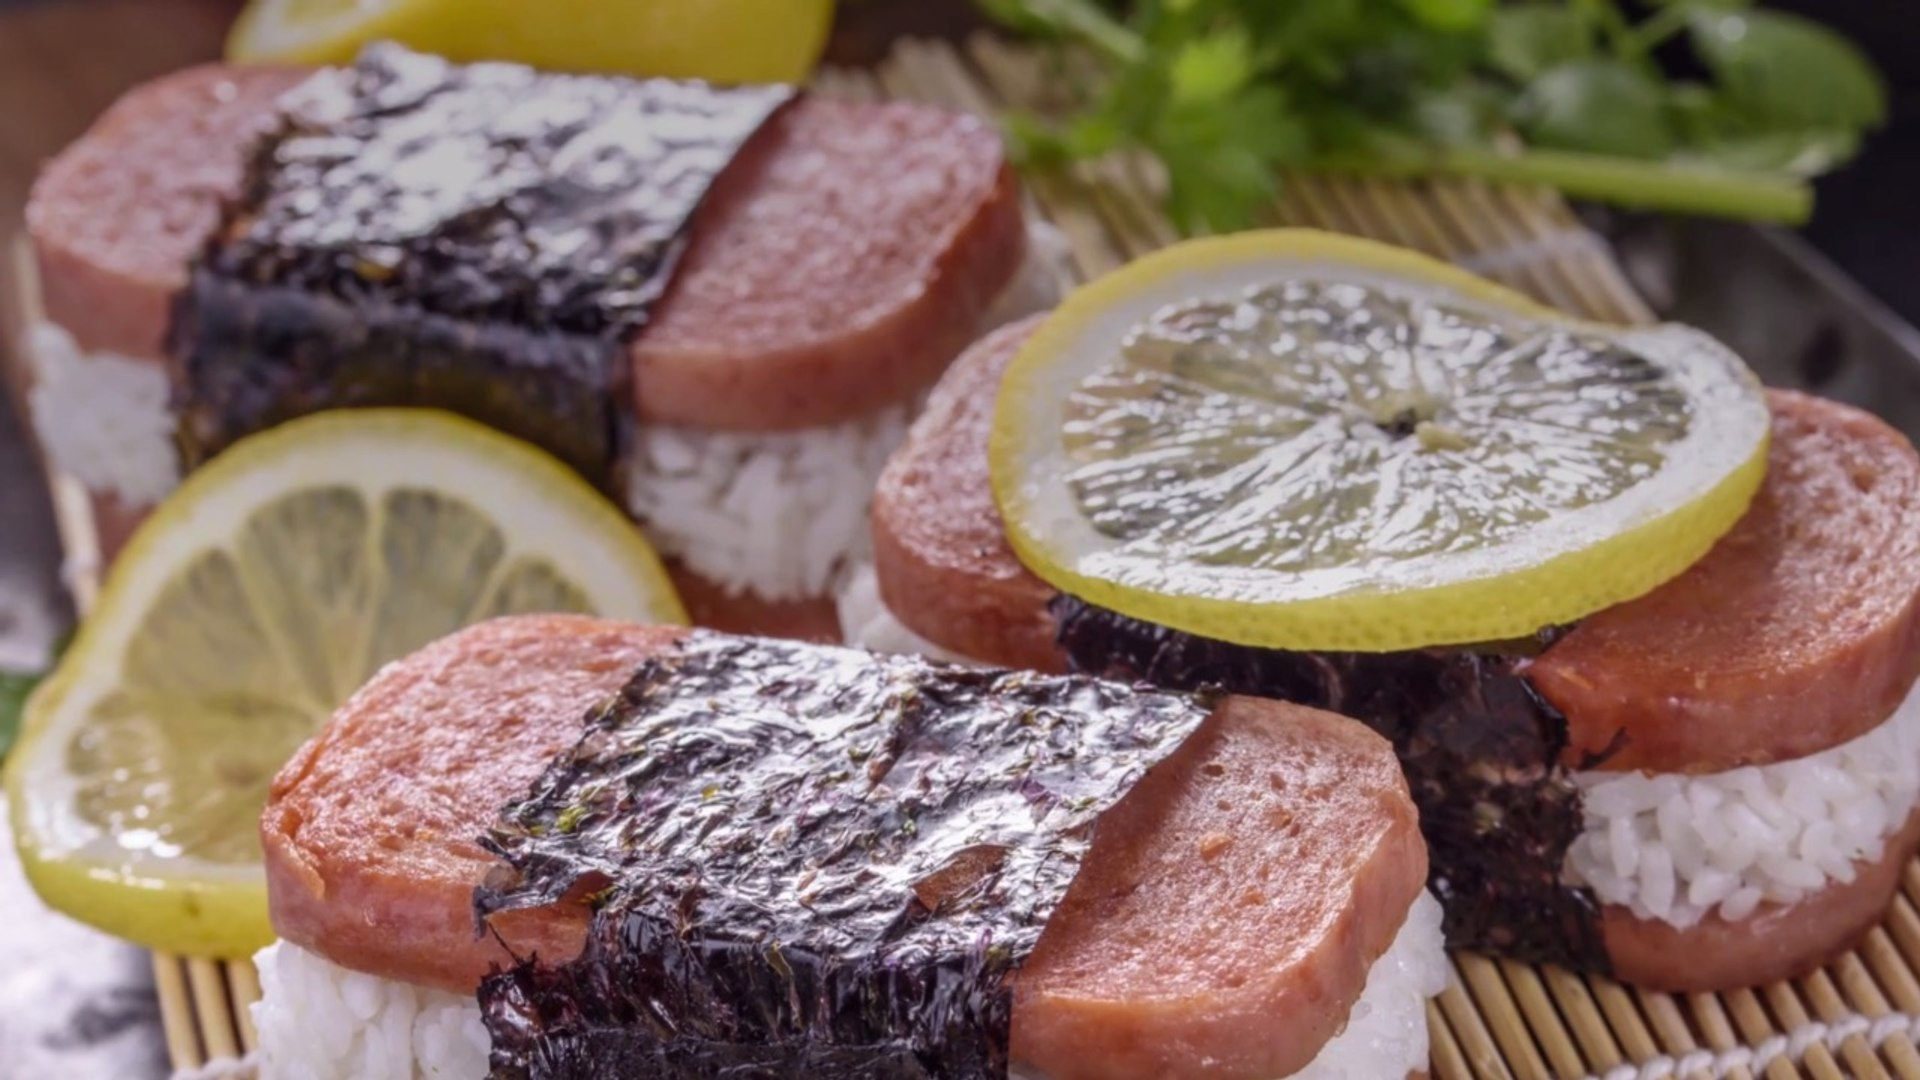 15 Slammin' Things To Do With Spam